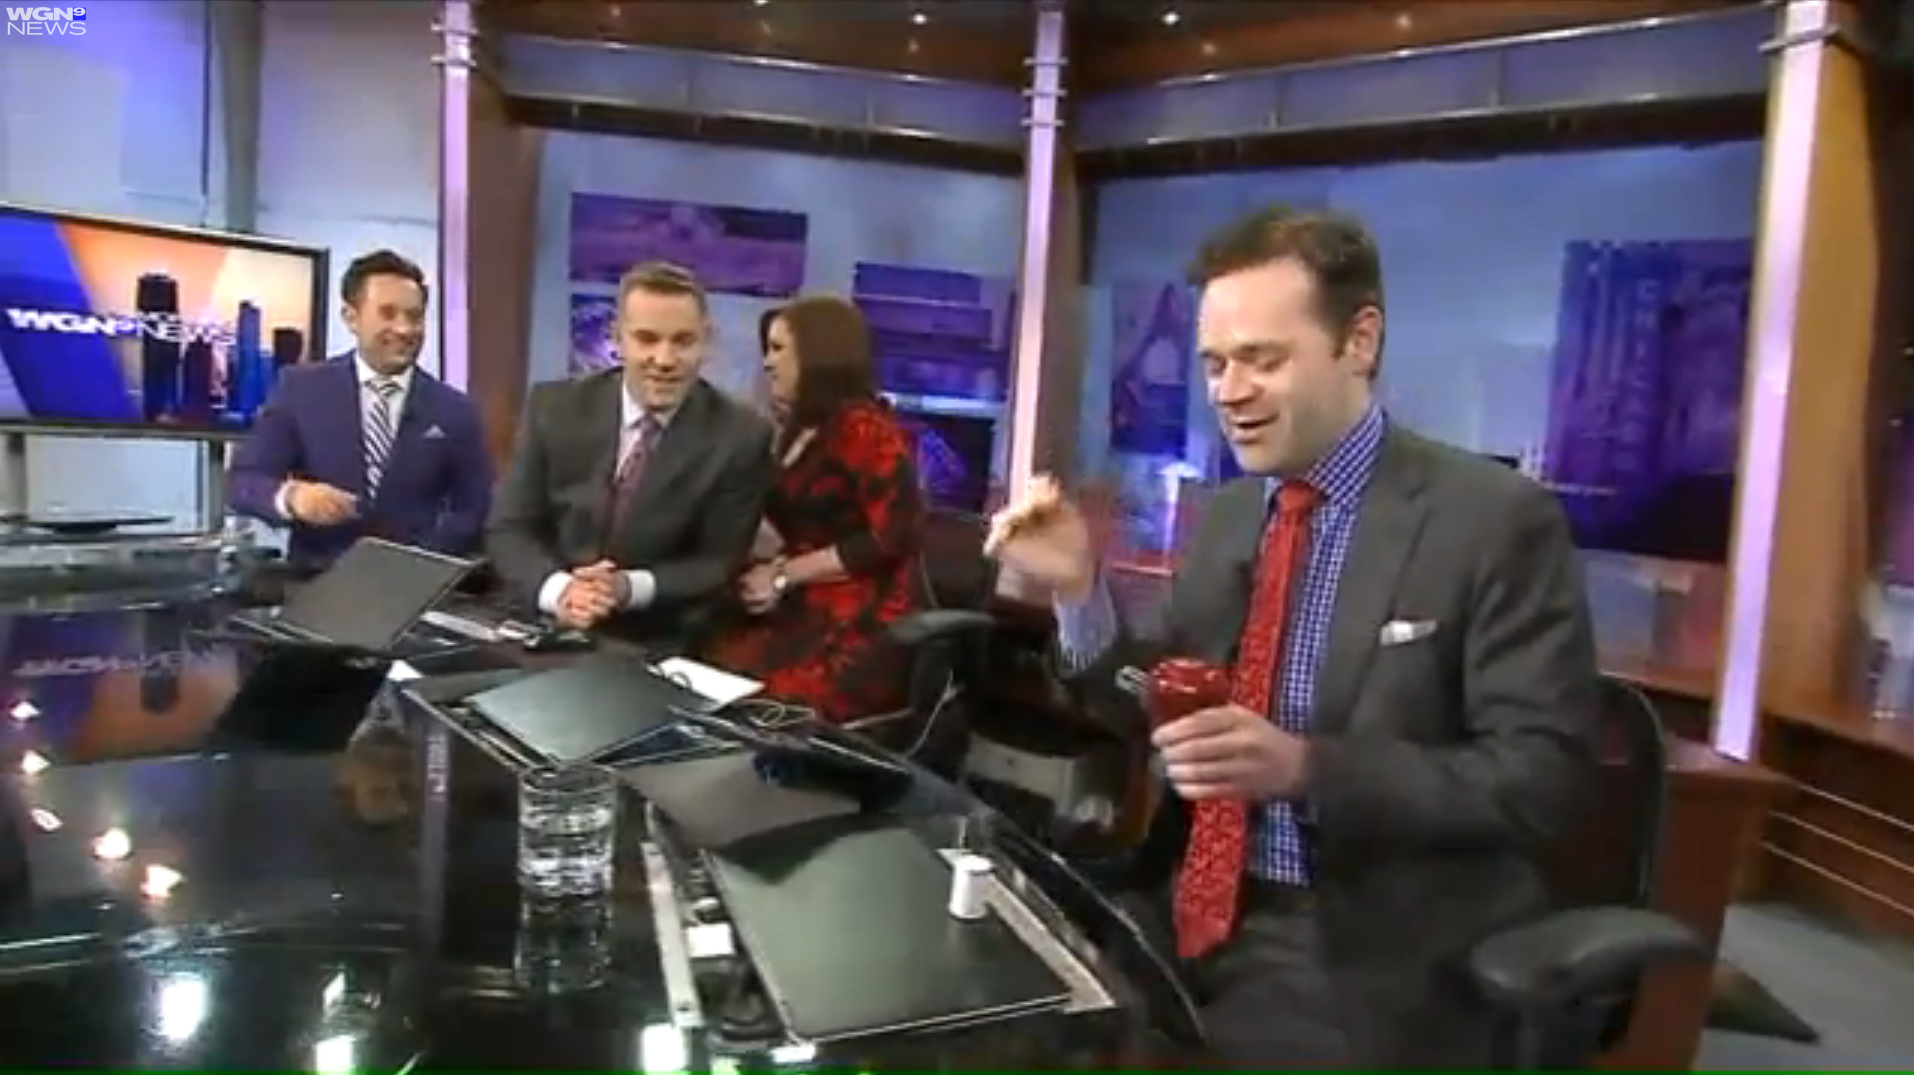 Click the image to see Dennis on WGN Morning News